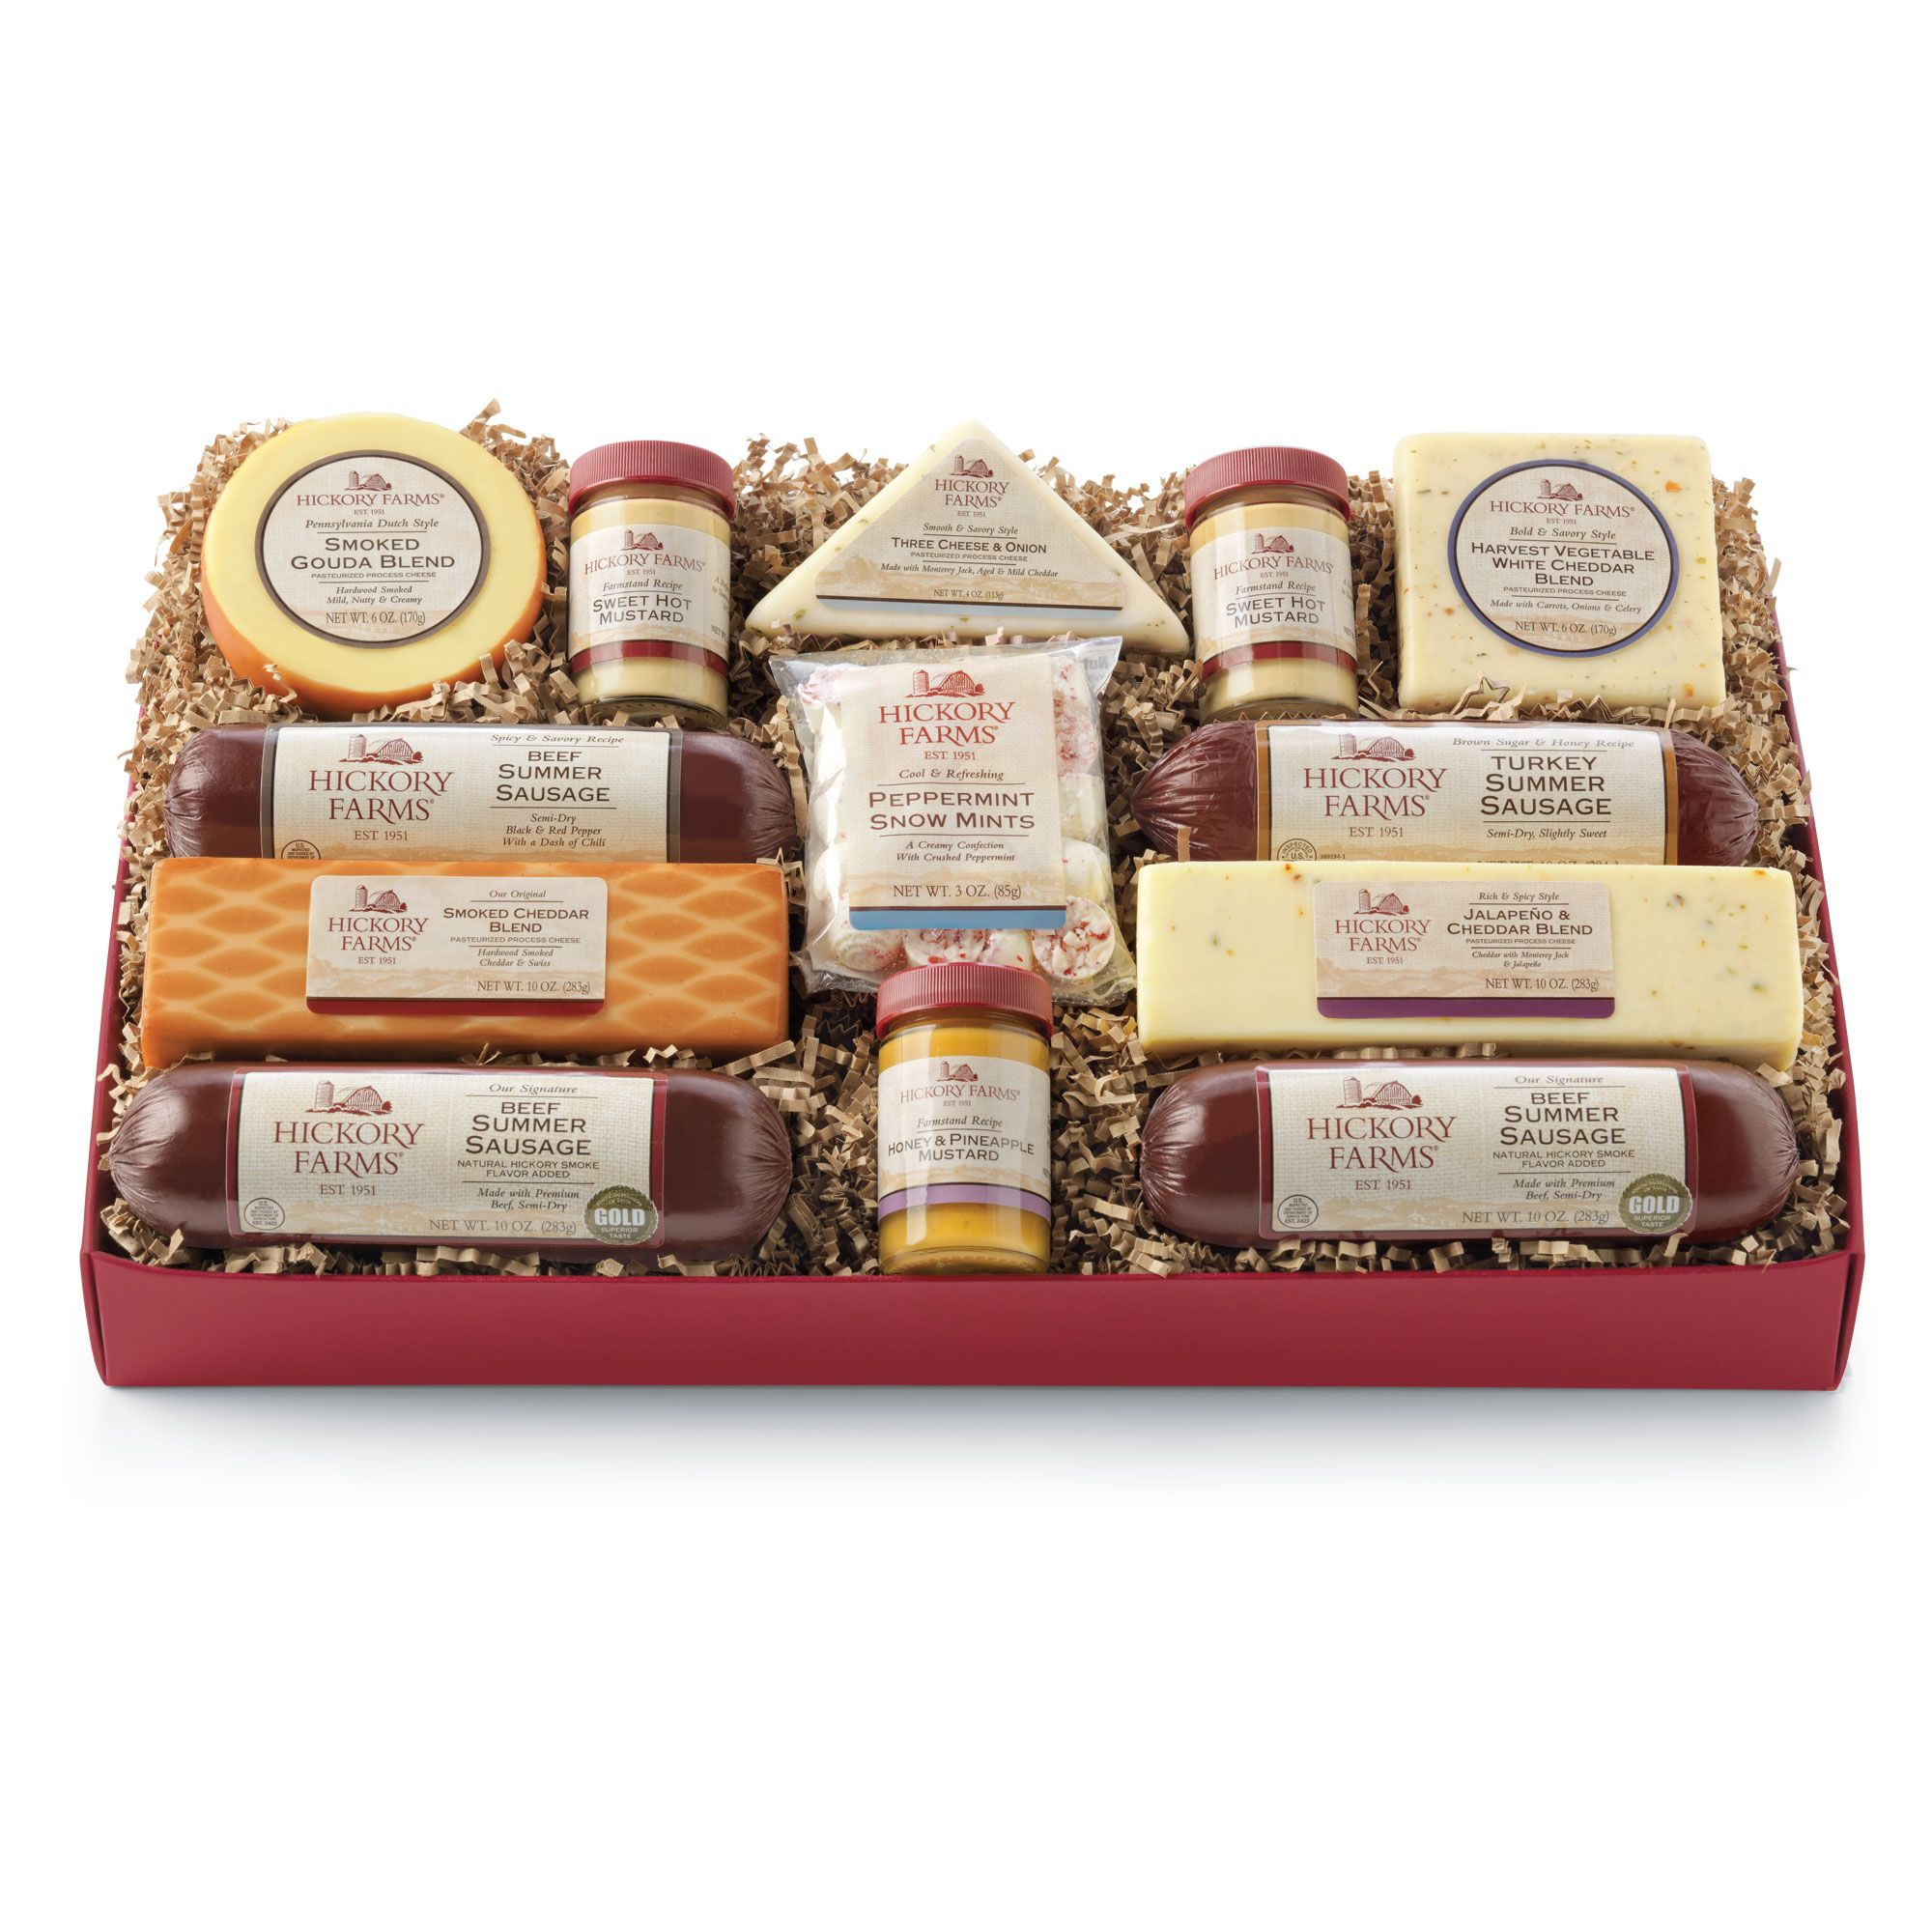 Deluxe Smokehouse Collection | Food | Pinterest | Hickory farms ...